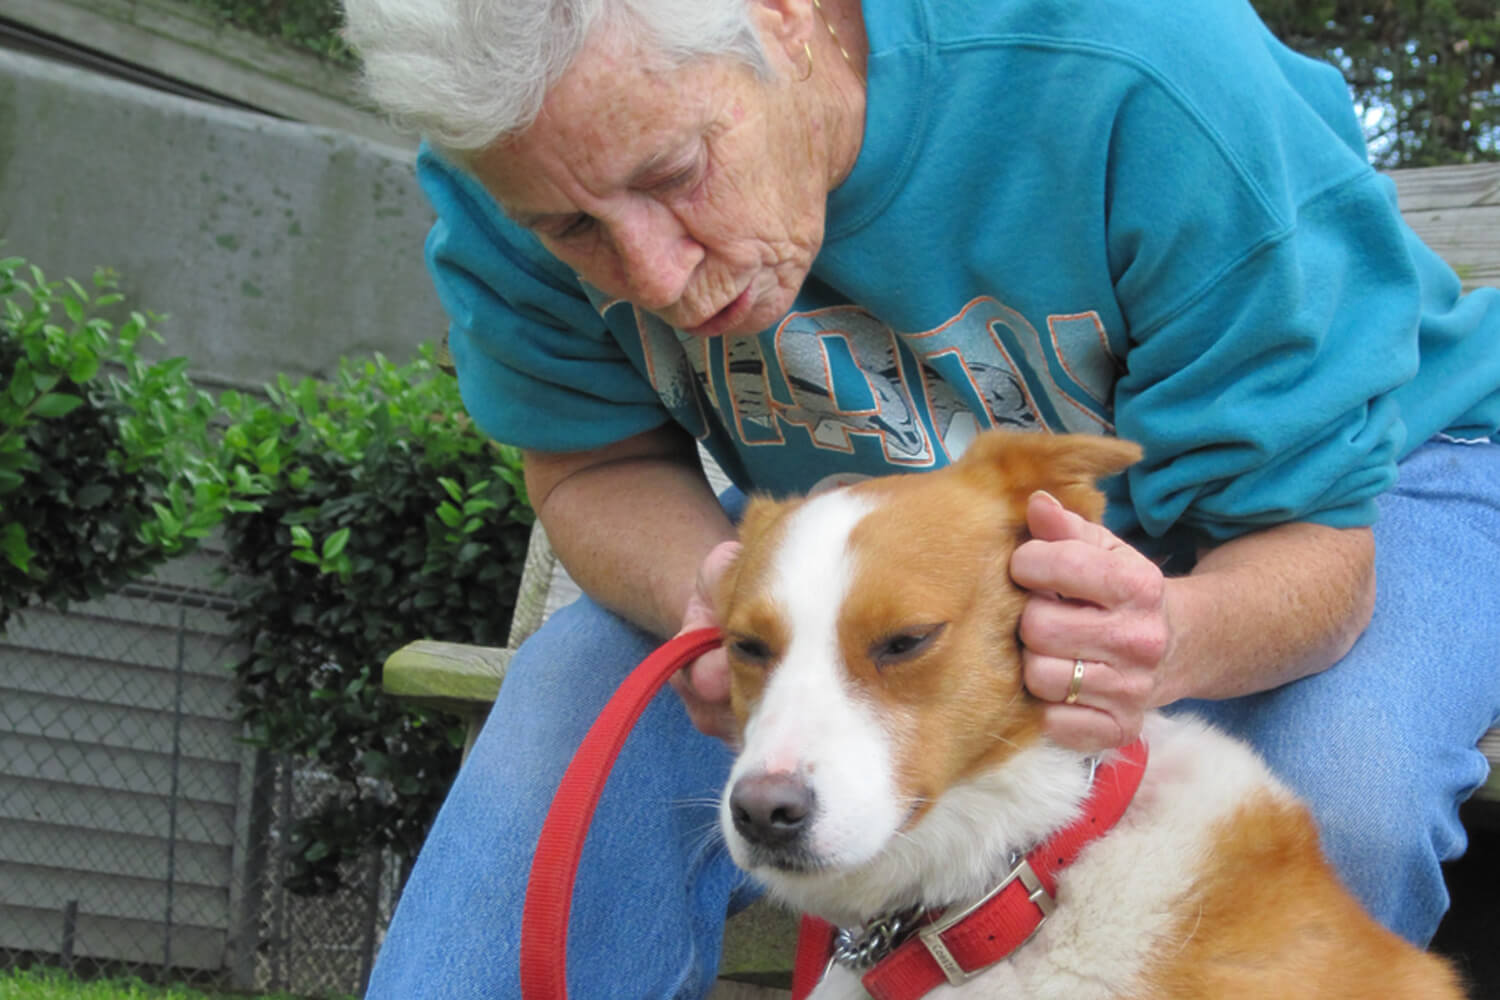 Maltreatment and Rescue of Pets